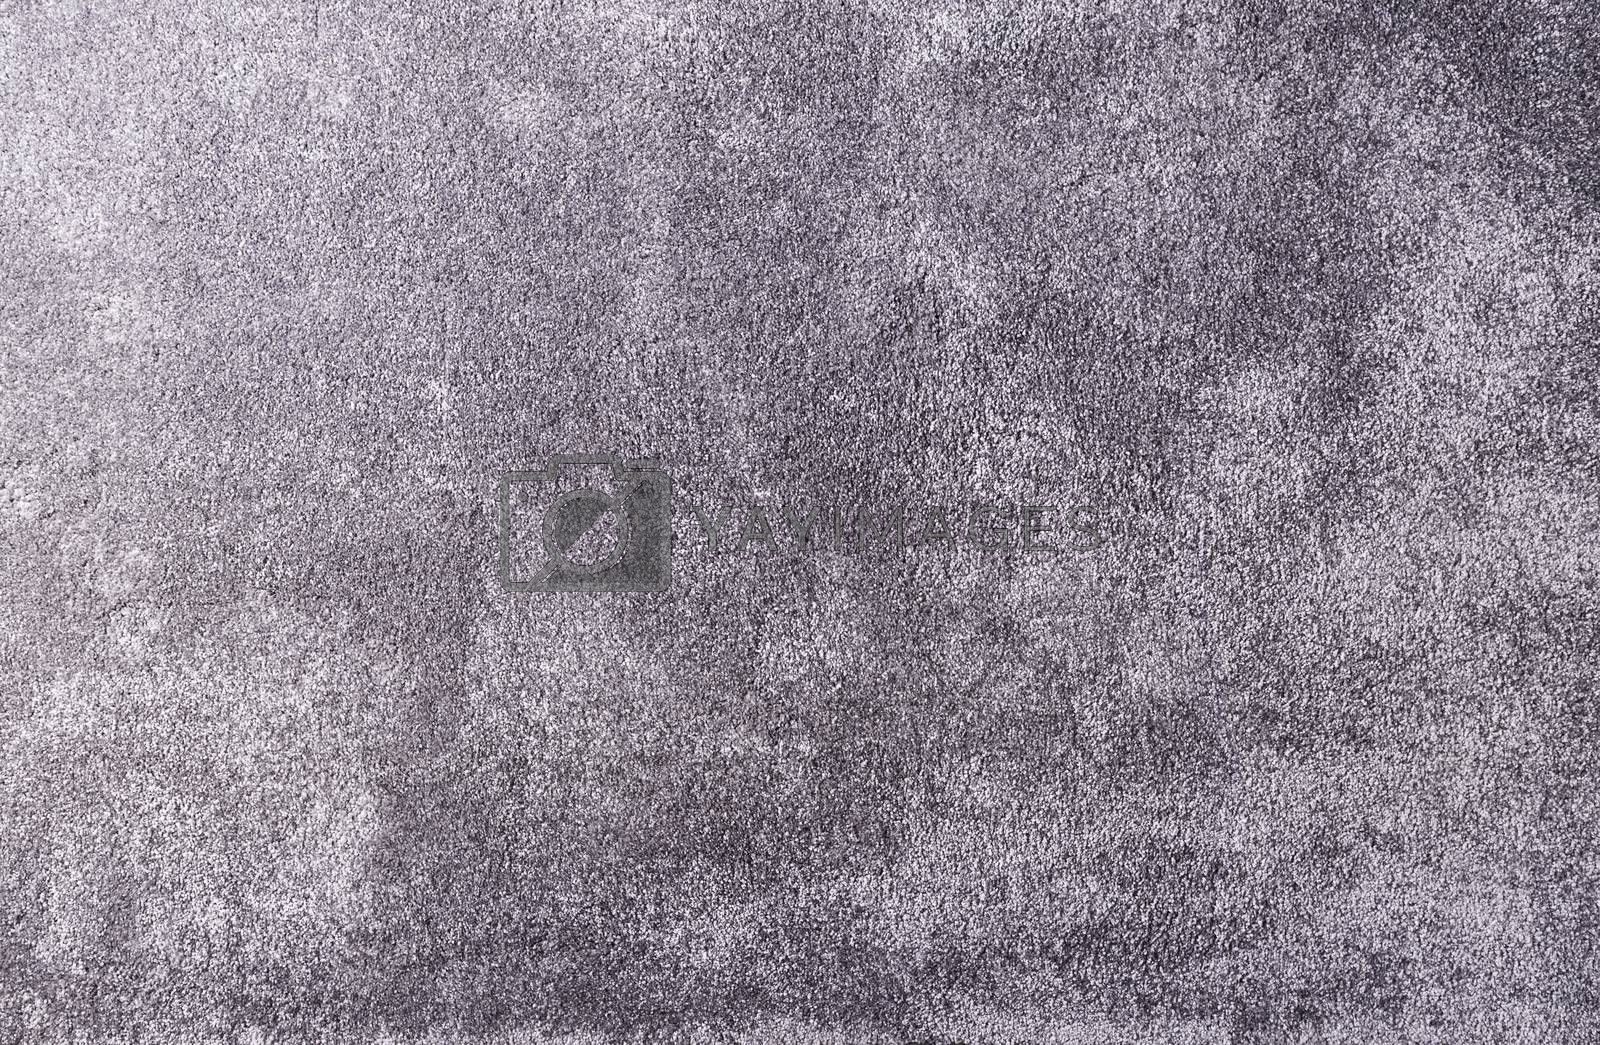 Grey carpet texture close up, indoors interior design